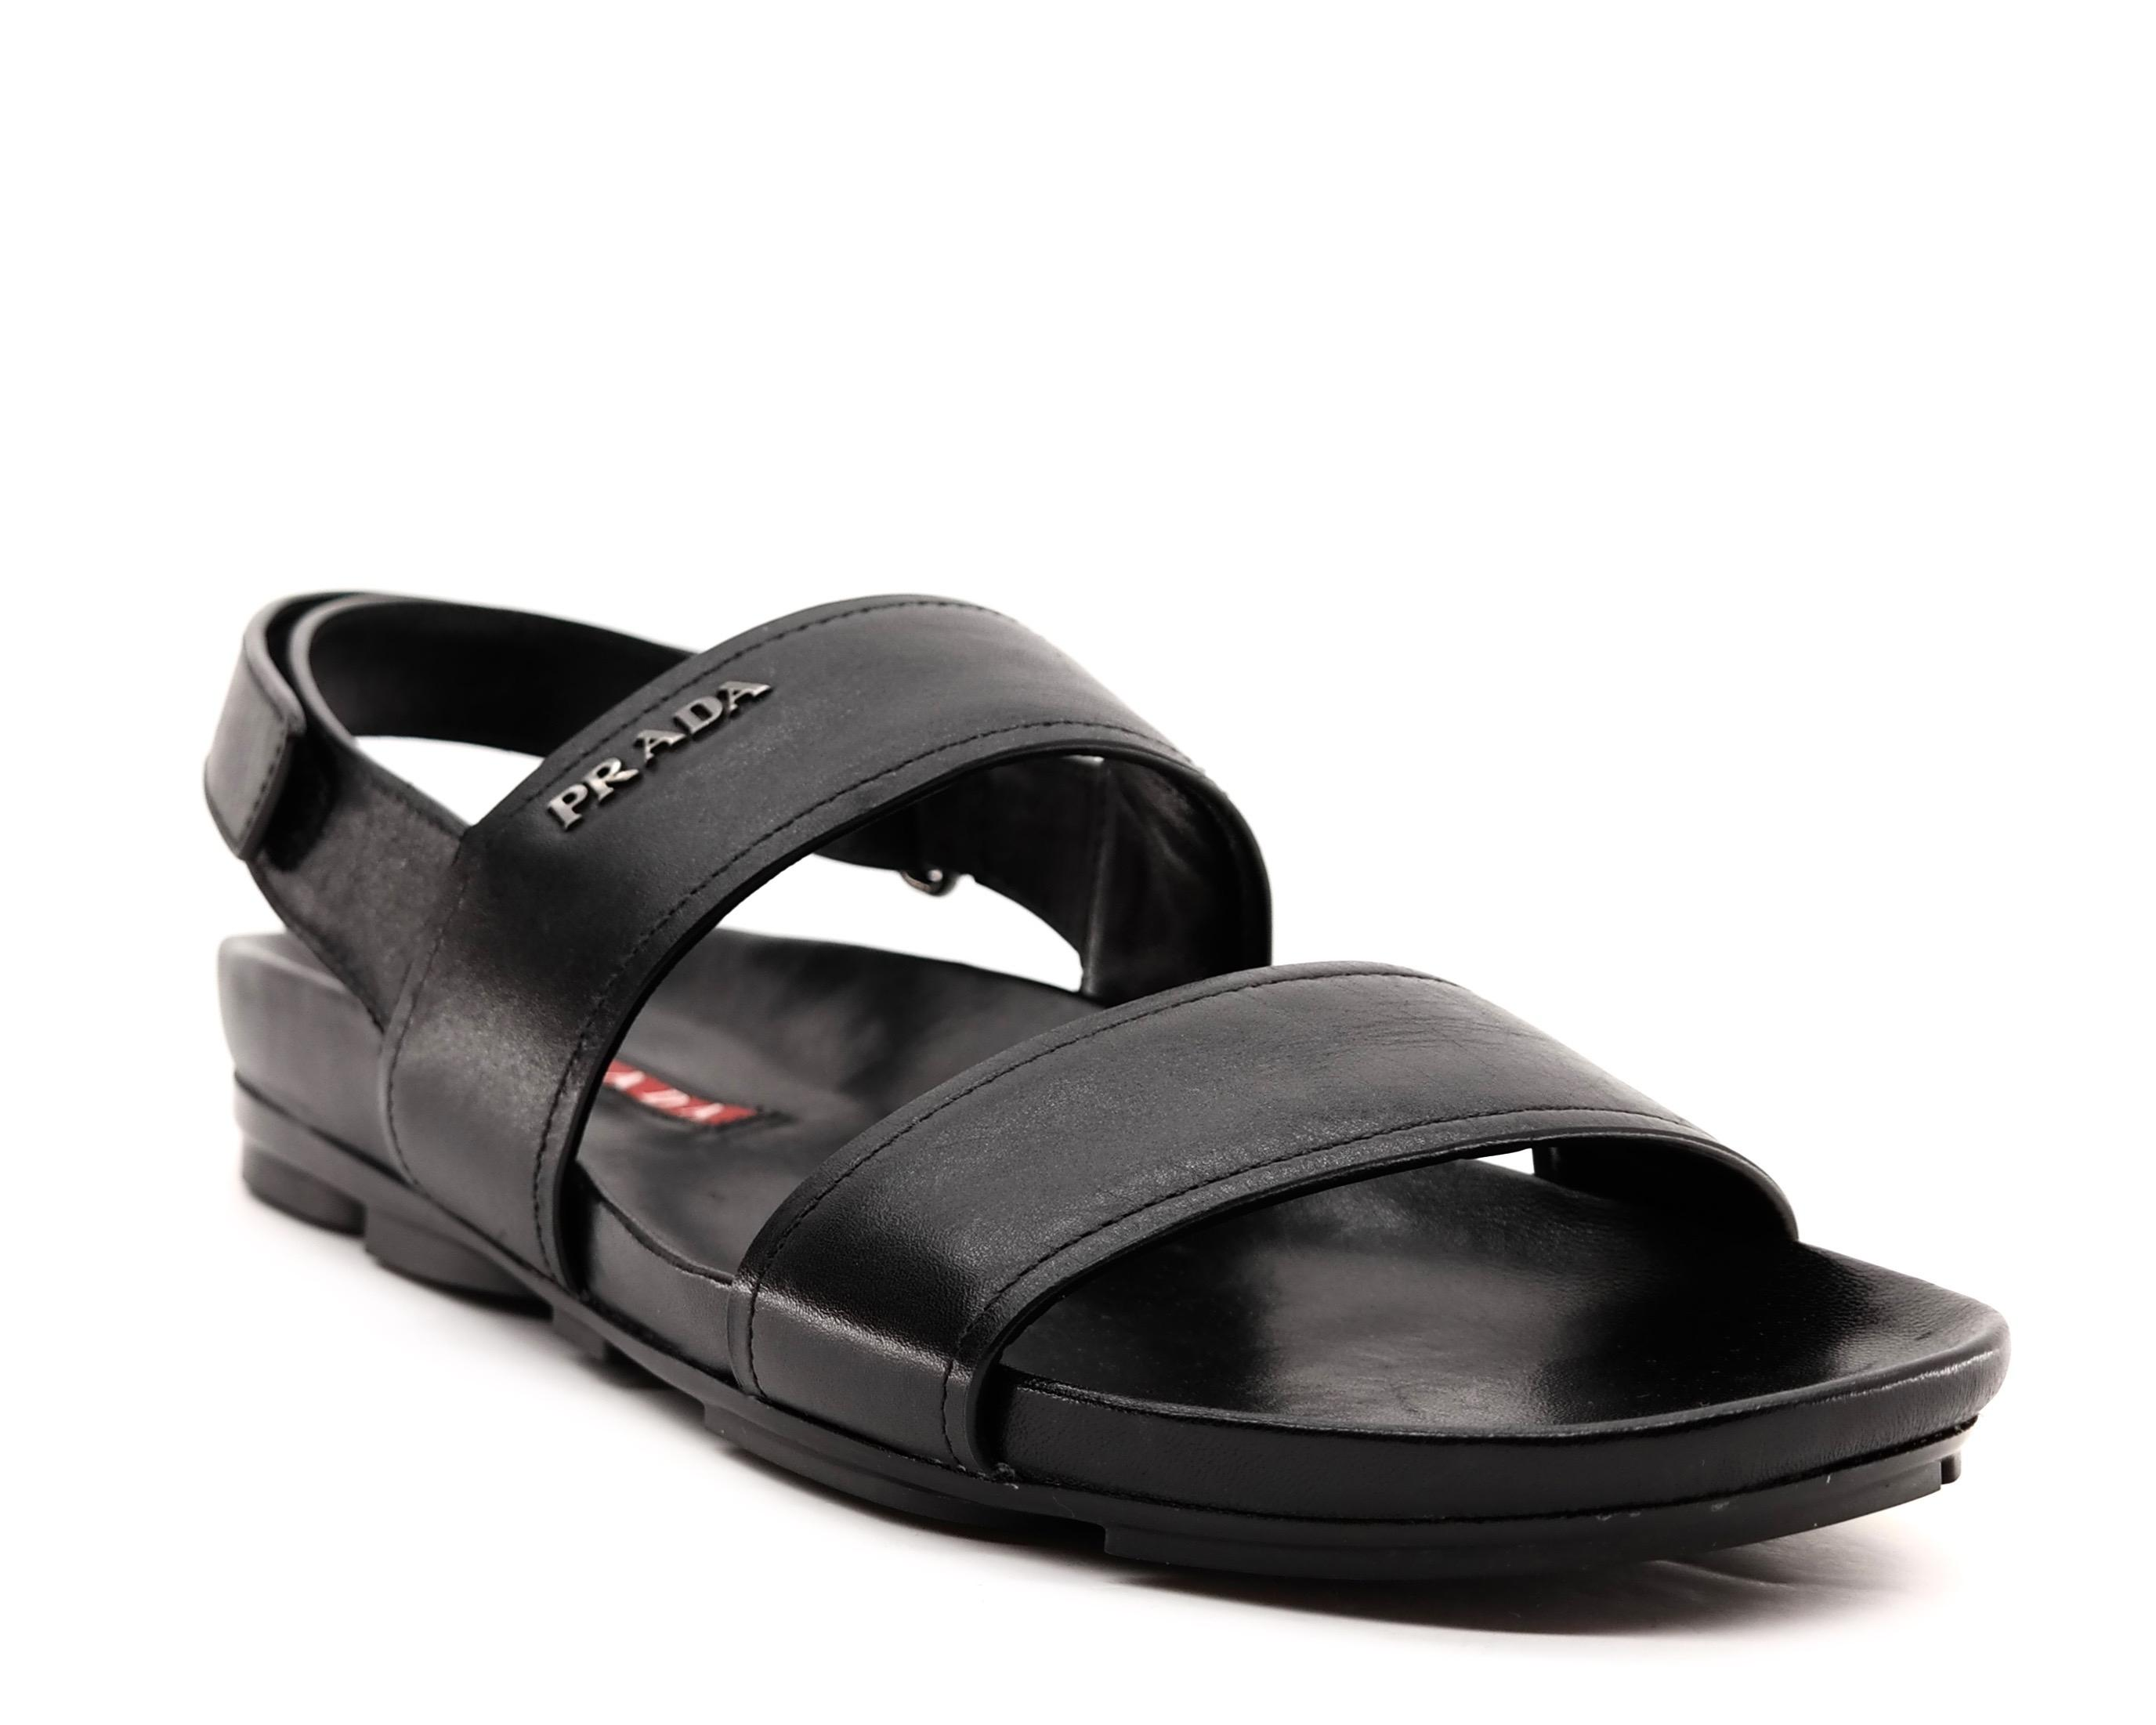 3fe1977e41b Prada Black Men  039 s Sandals Sandals Sandals Size US 9 Regular (M ...